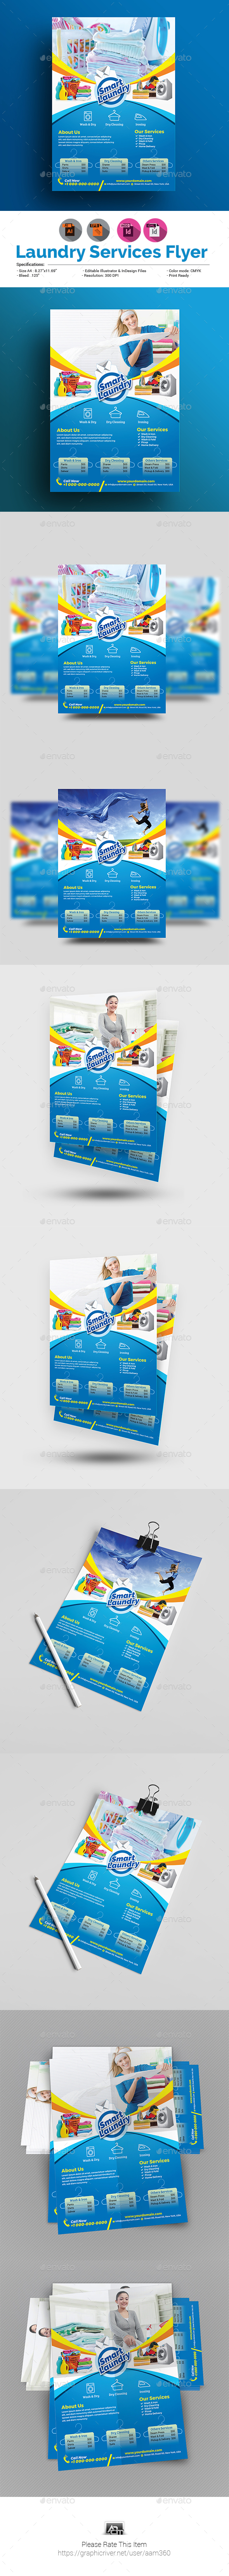 Laundry Service Flyer Template - Commerce Flyers